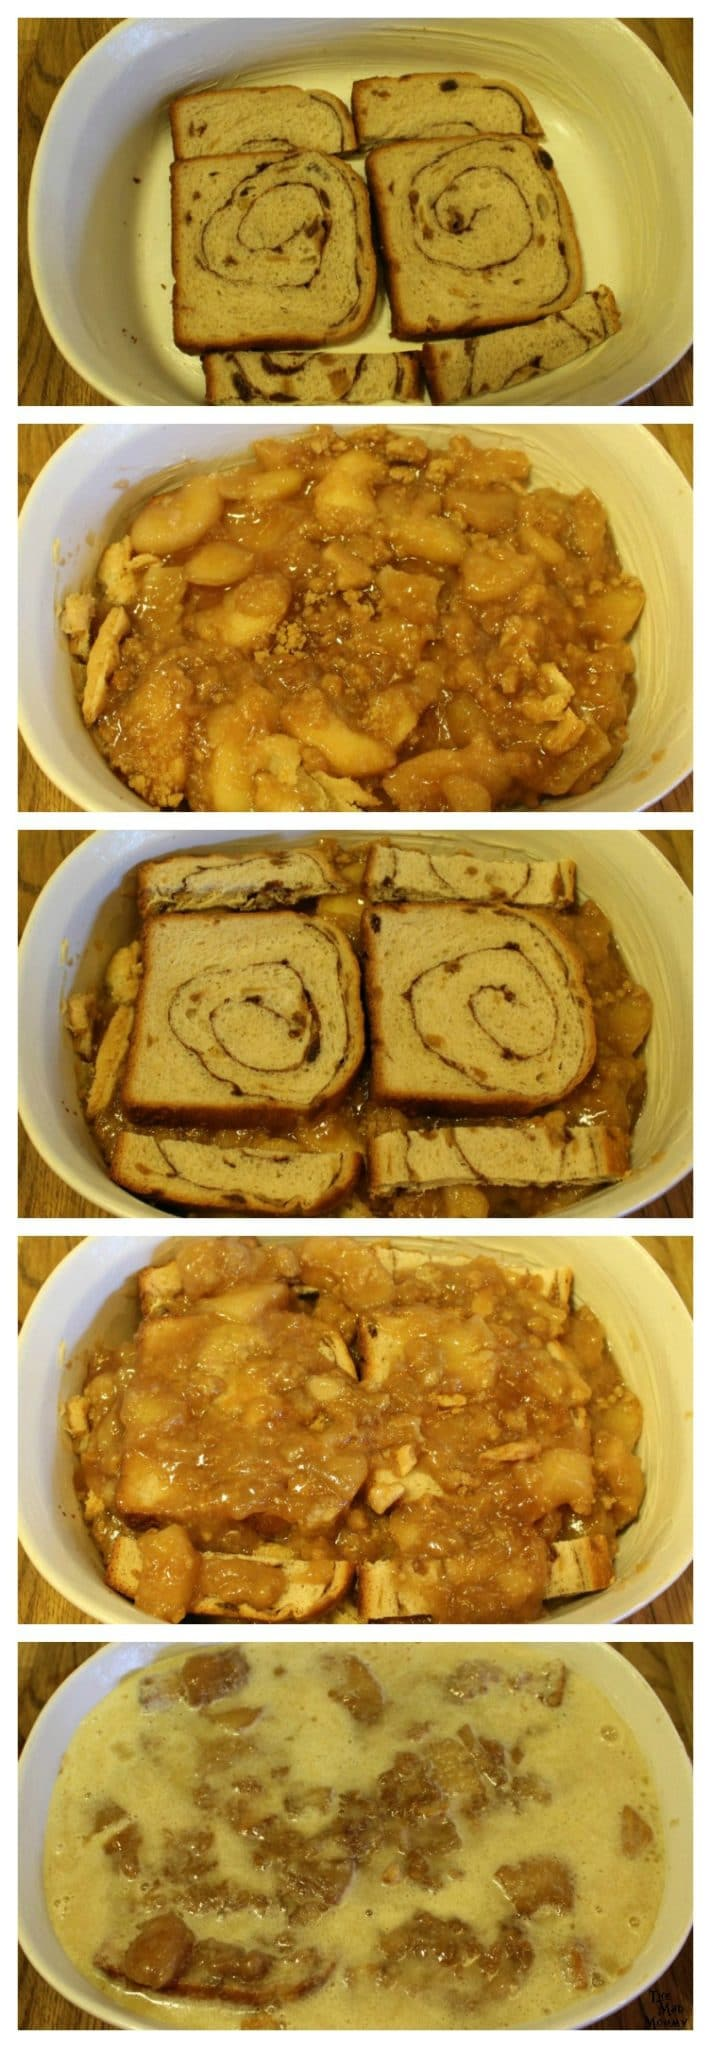 Layering your Apple Pie Baked French Toast with cinnamon swirl bread and Dutch Apple Pie! #ShareTheJoyOfPie #ad #CollectiveBias